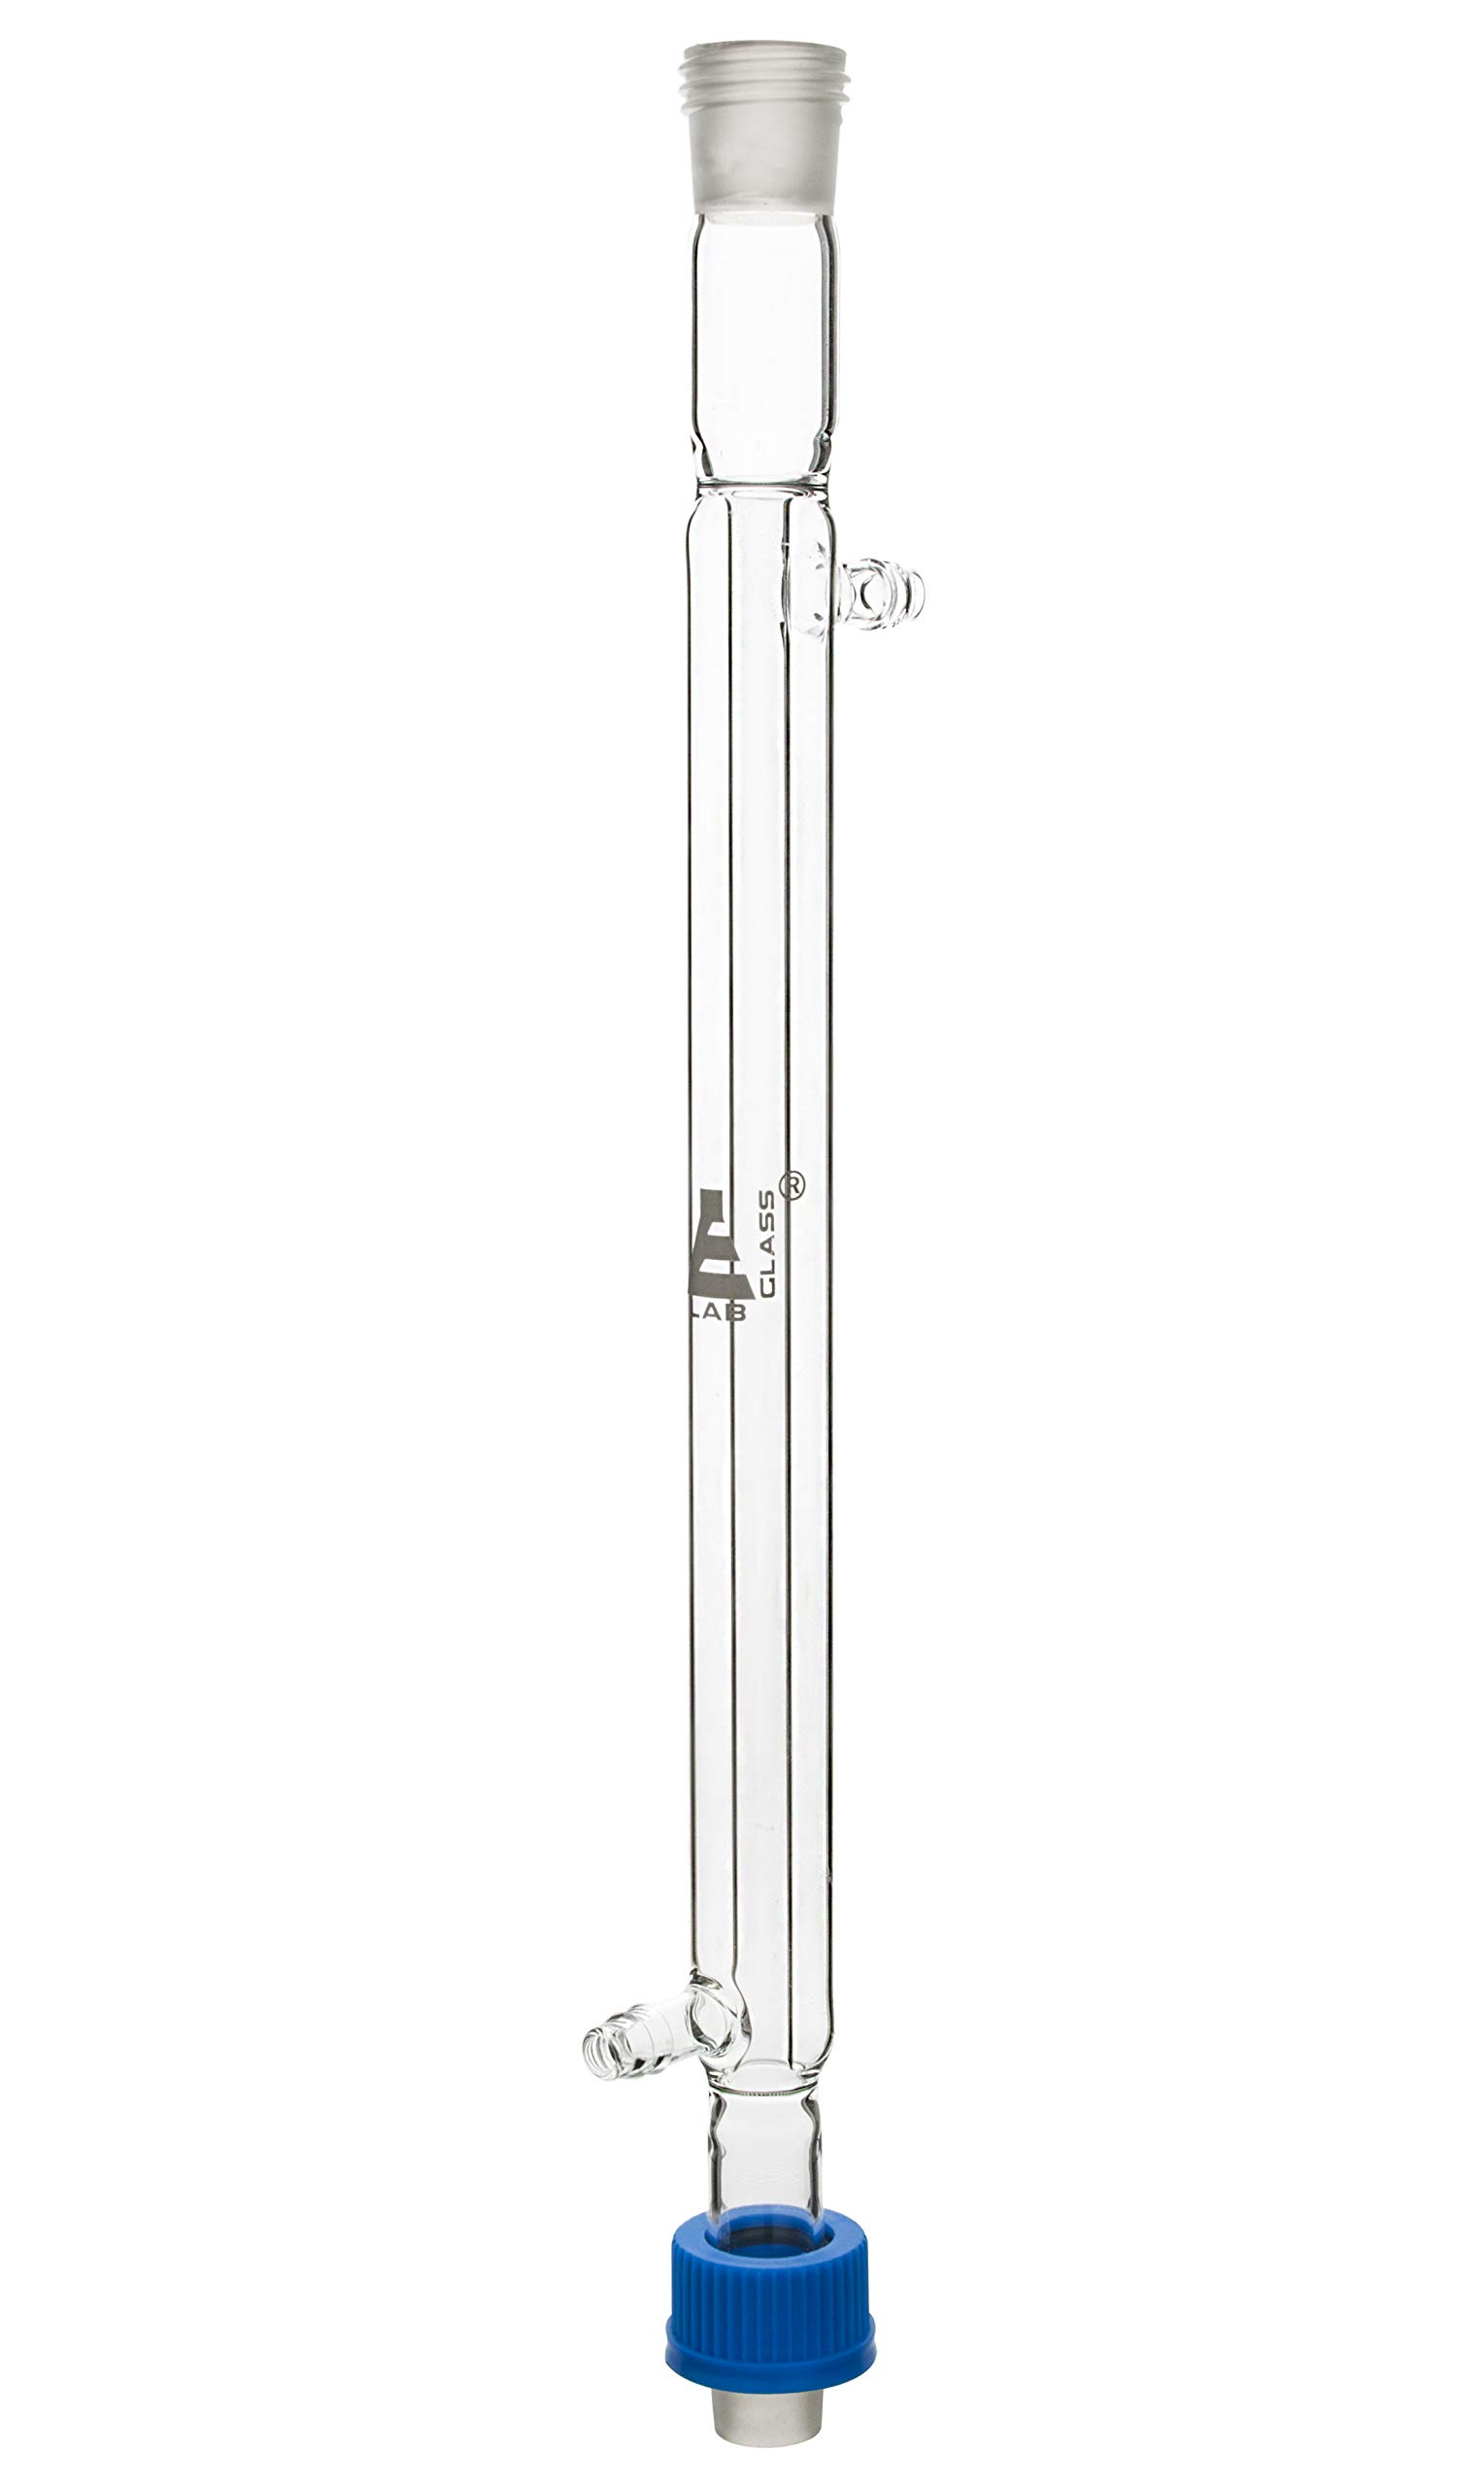 Liebig Condenser, 200mm, Socket/Cone Size 19/26, Interchangeable Screw Thread Joint, Borosilicate Glass - Eisco Labs by EISCO